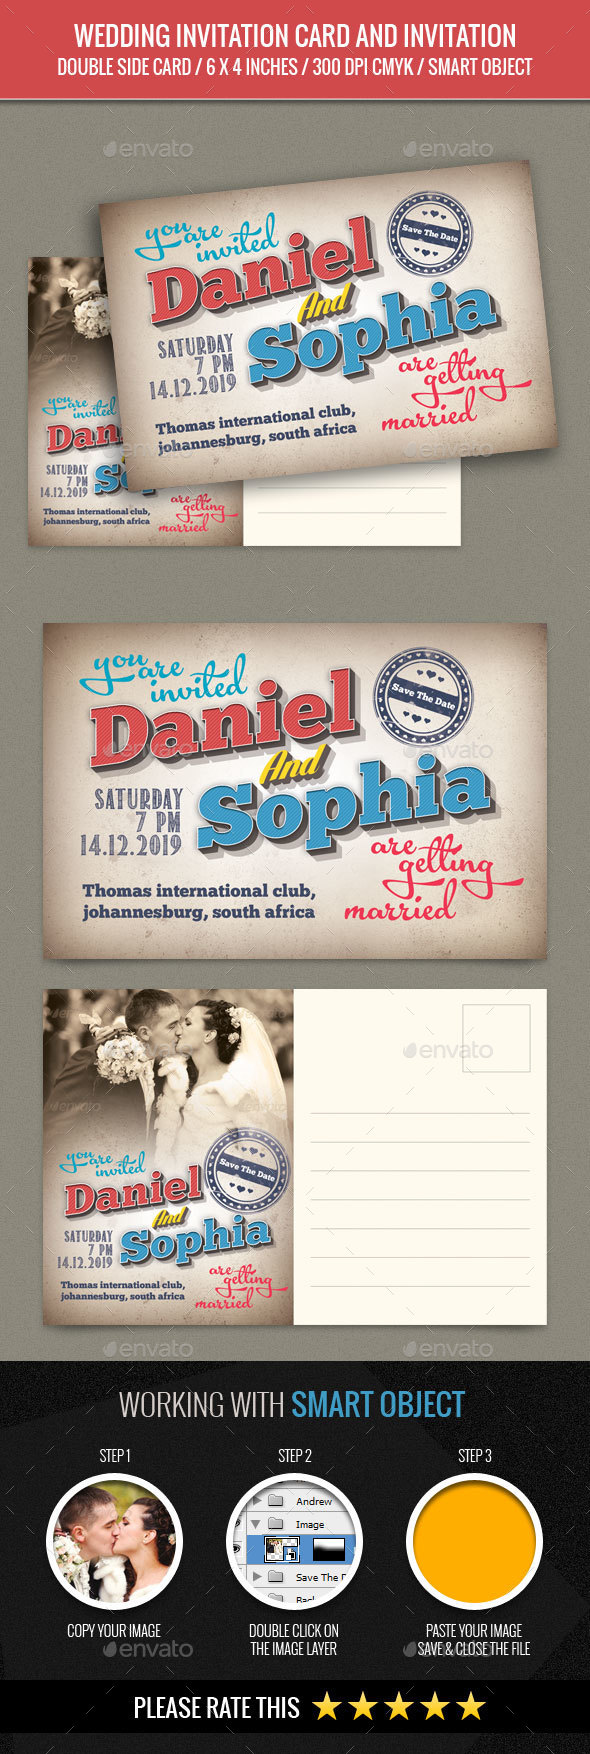 Wedding Invitation Post Card - Weddings Cards & Invites